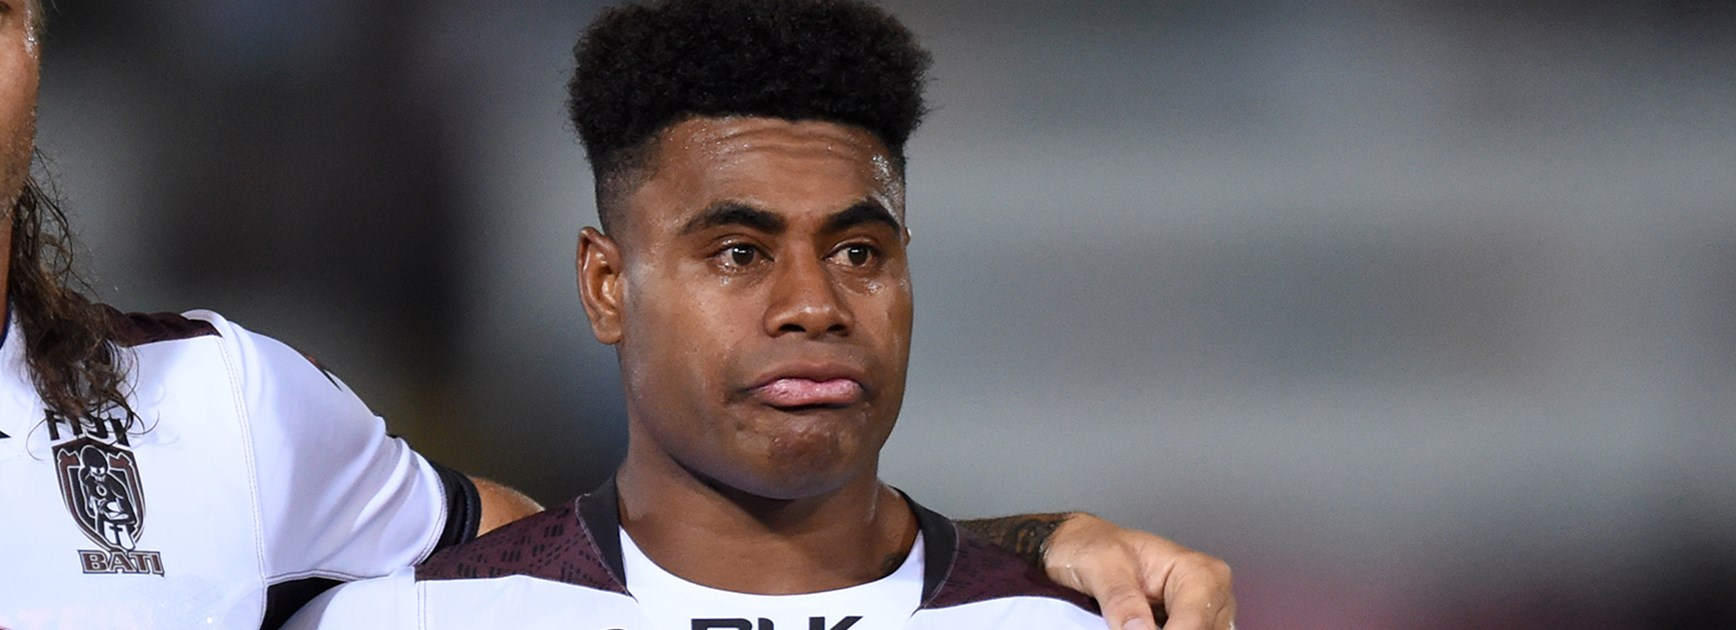 Fiji's Kevin Kev Naiqama was emotional during the singing of the anthems ahead of their World Cup opener.